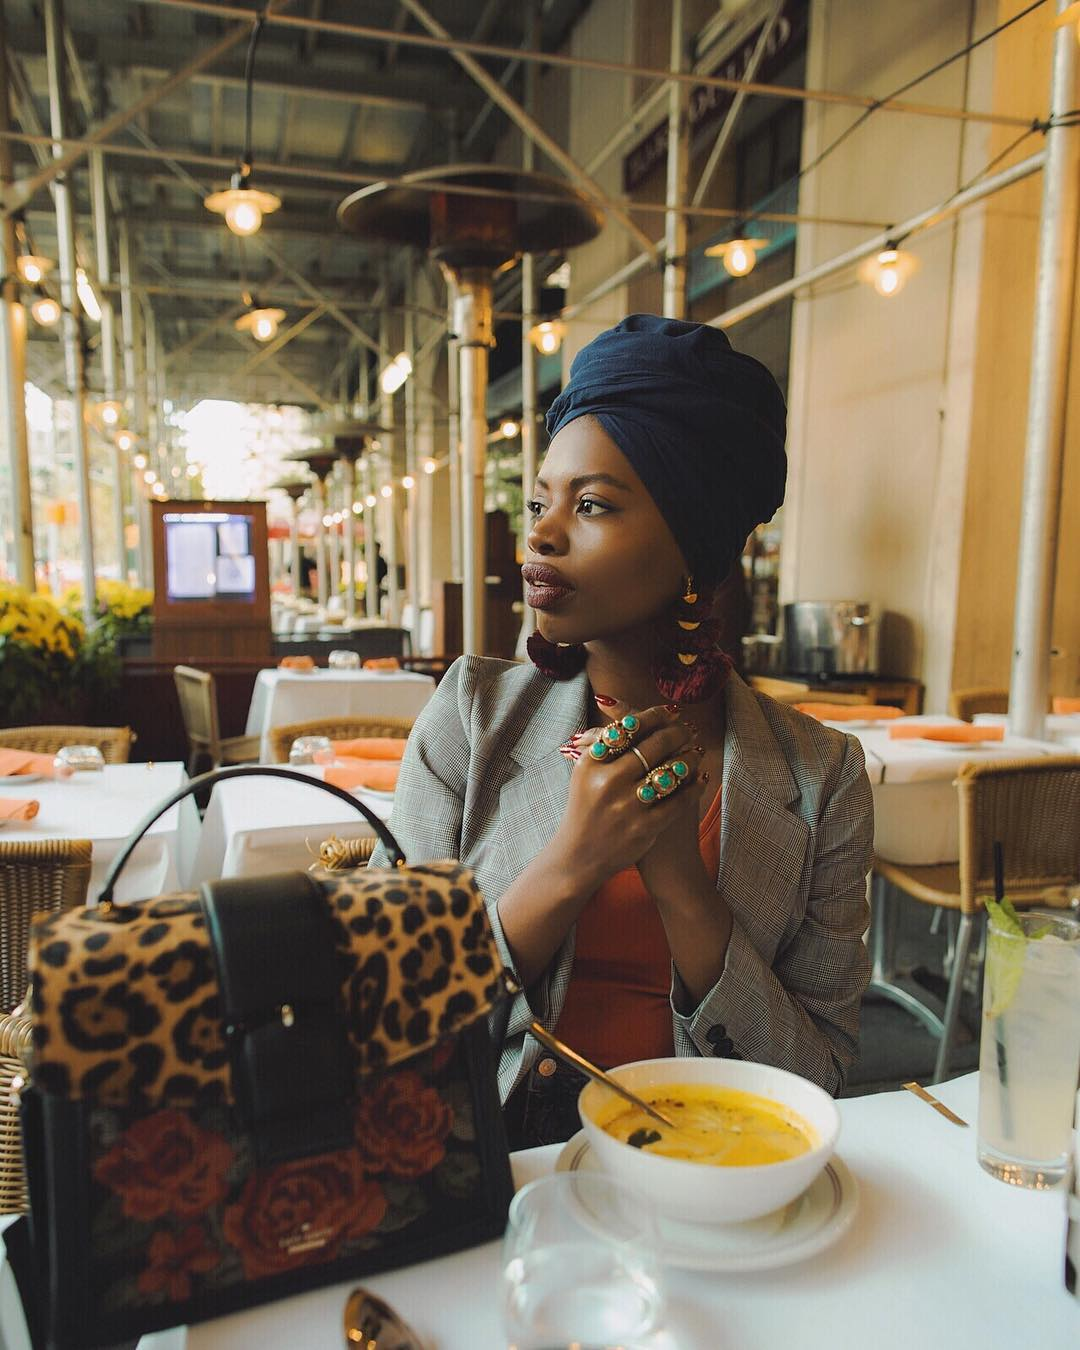 Paola Mathe Ties The Best Turbans & We Are Loving The Vibe!